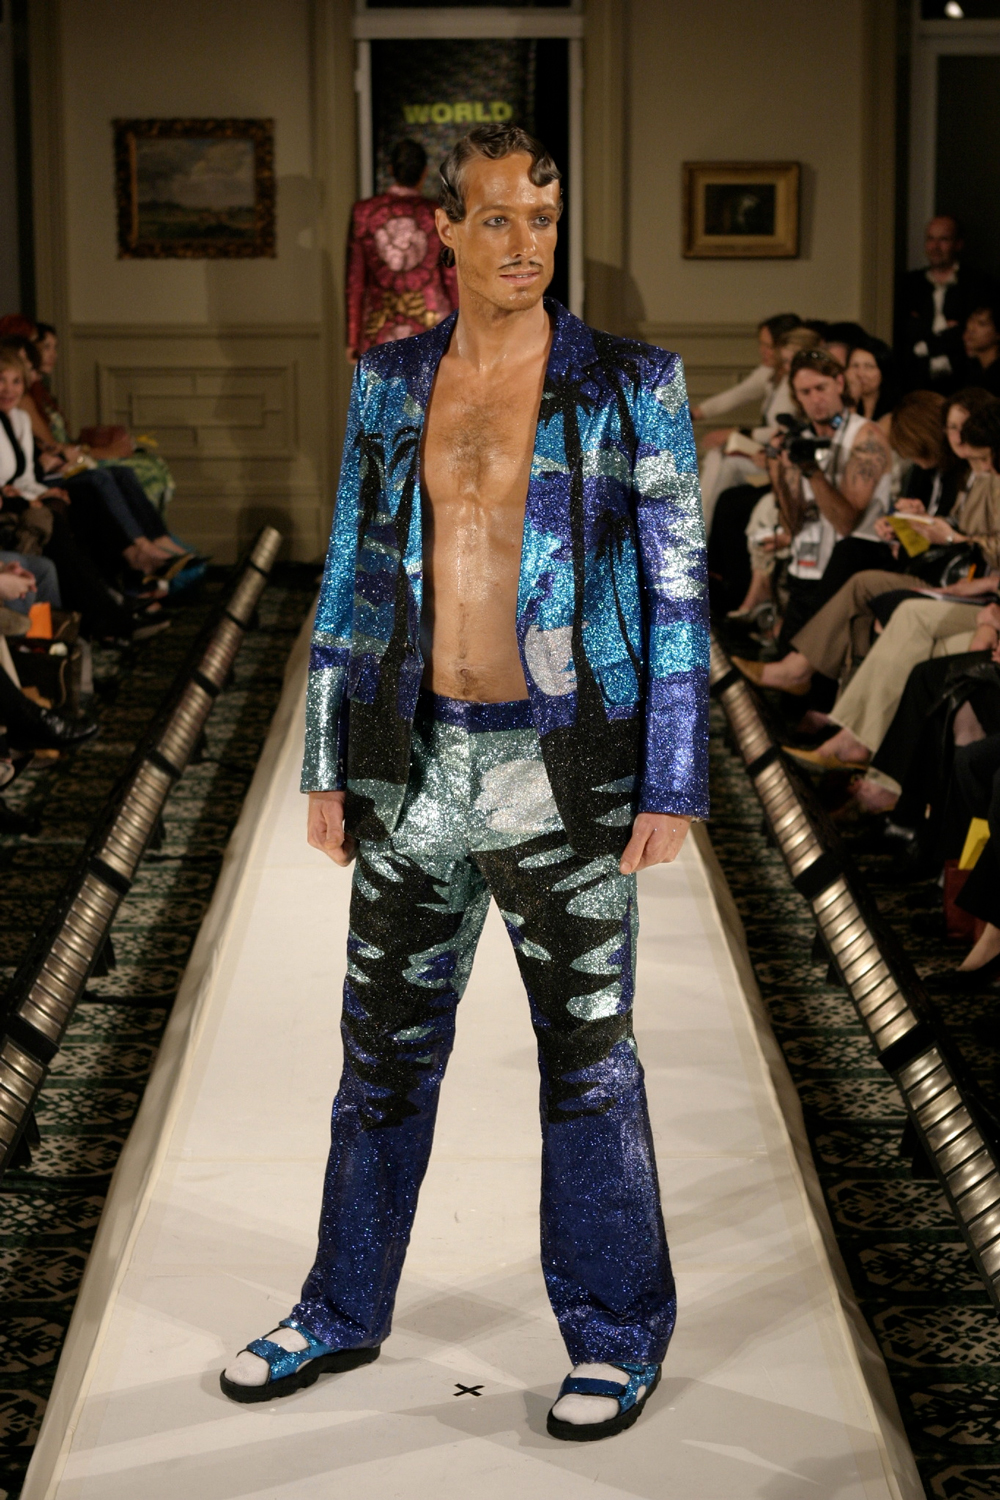 Survival and Atomic Bombing, 2003 Glitter on Fabric, WORLD Winter Collection, NZ fashion Week. Photo: Michael Ng.